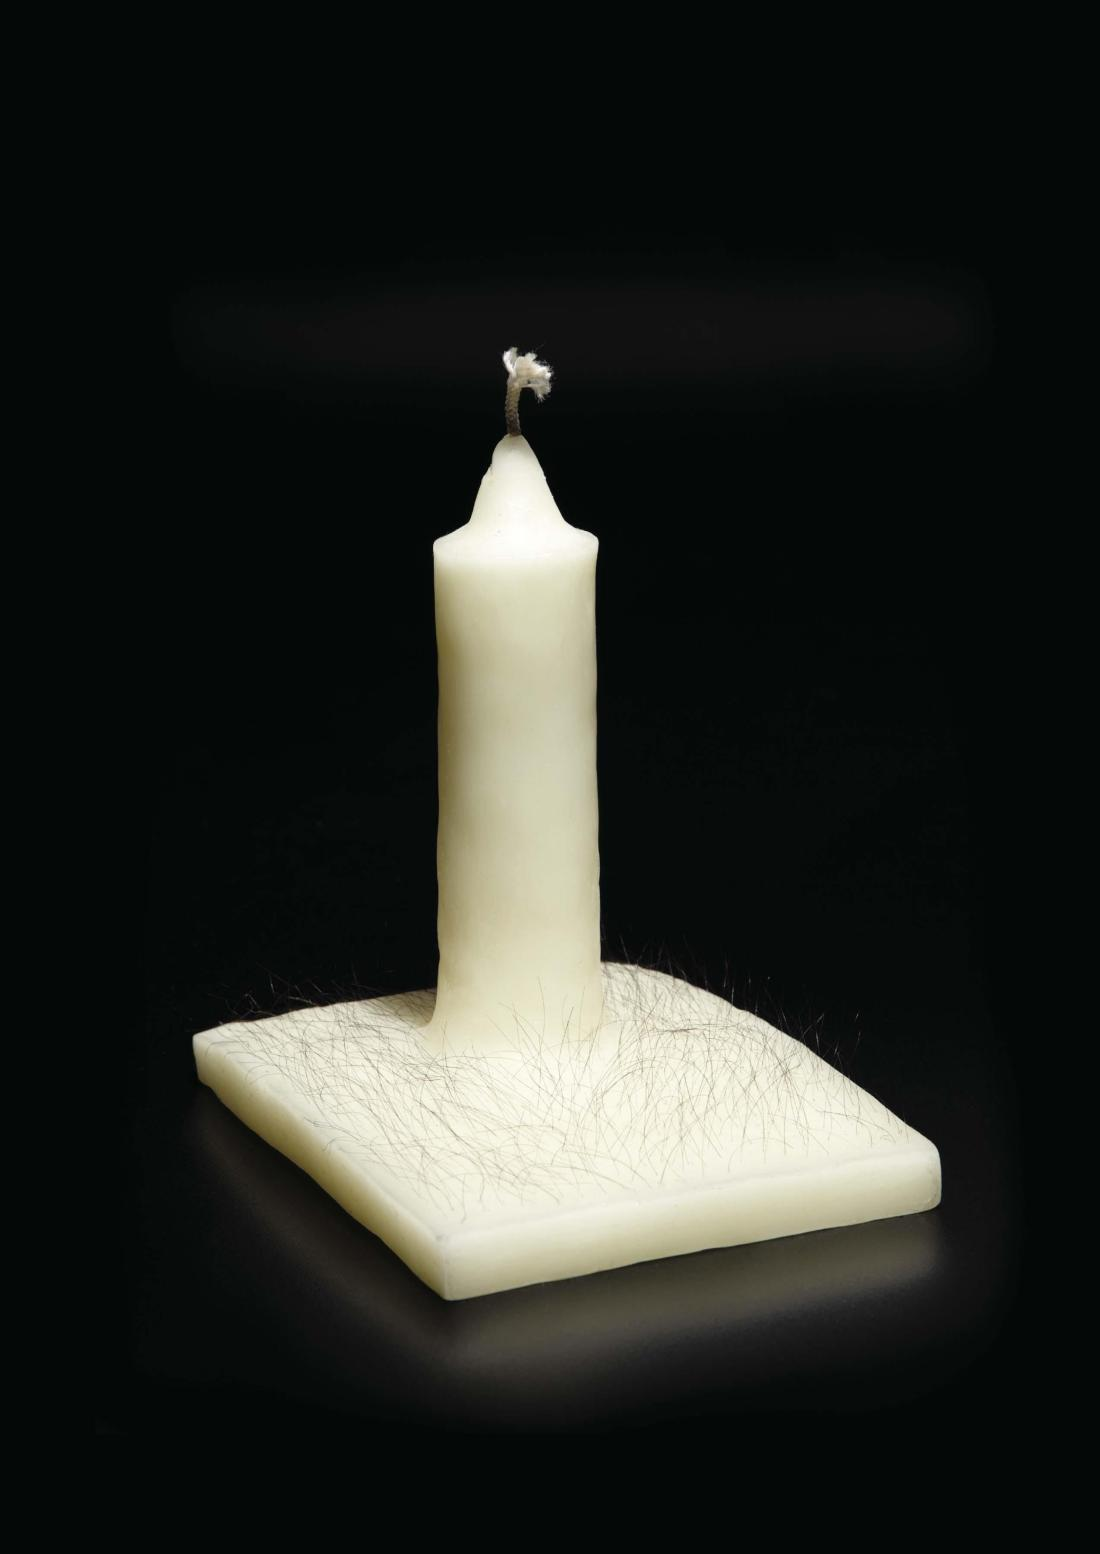 Robert Gober, Untitled (Candle), 1991.